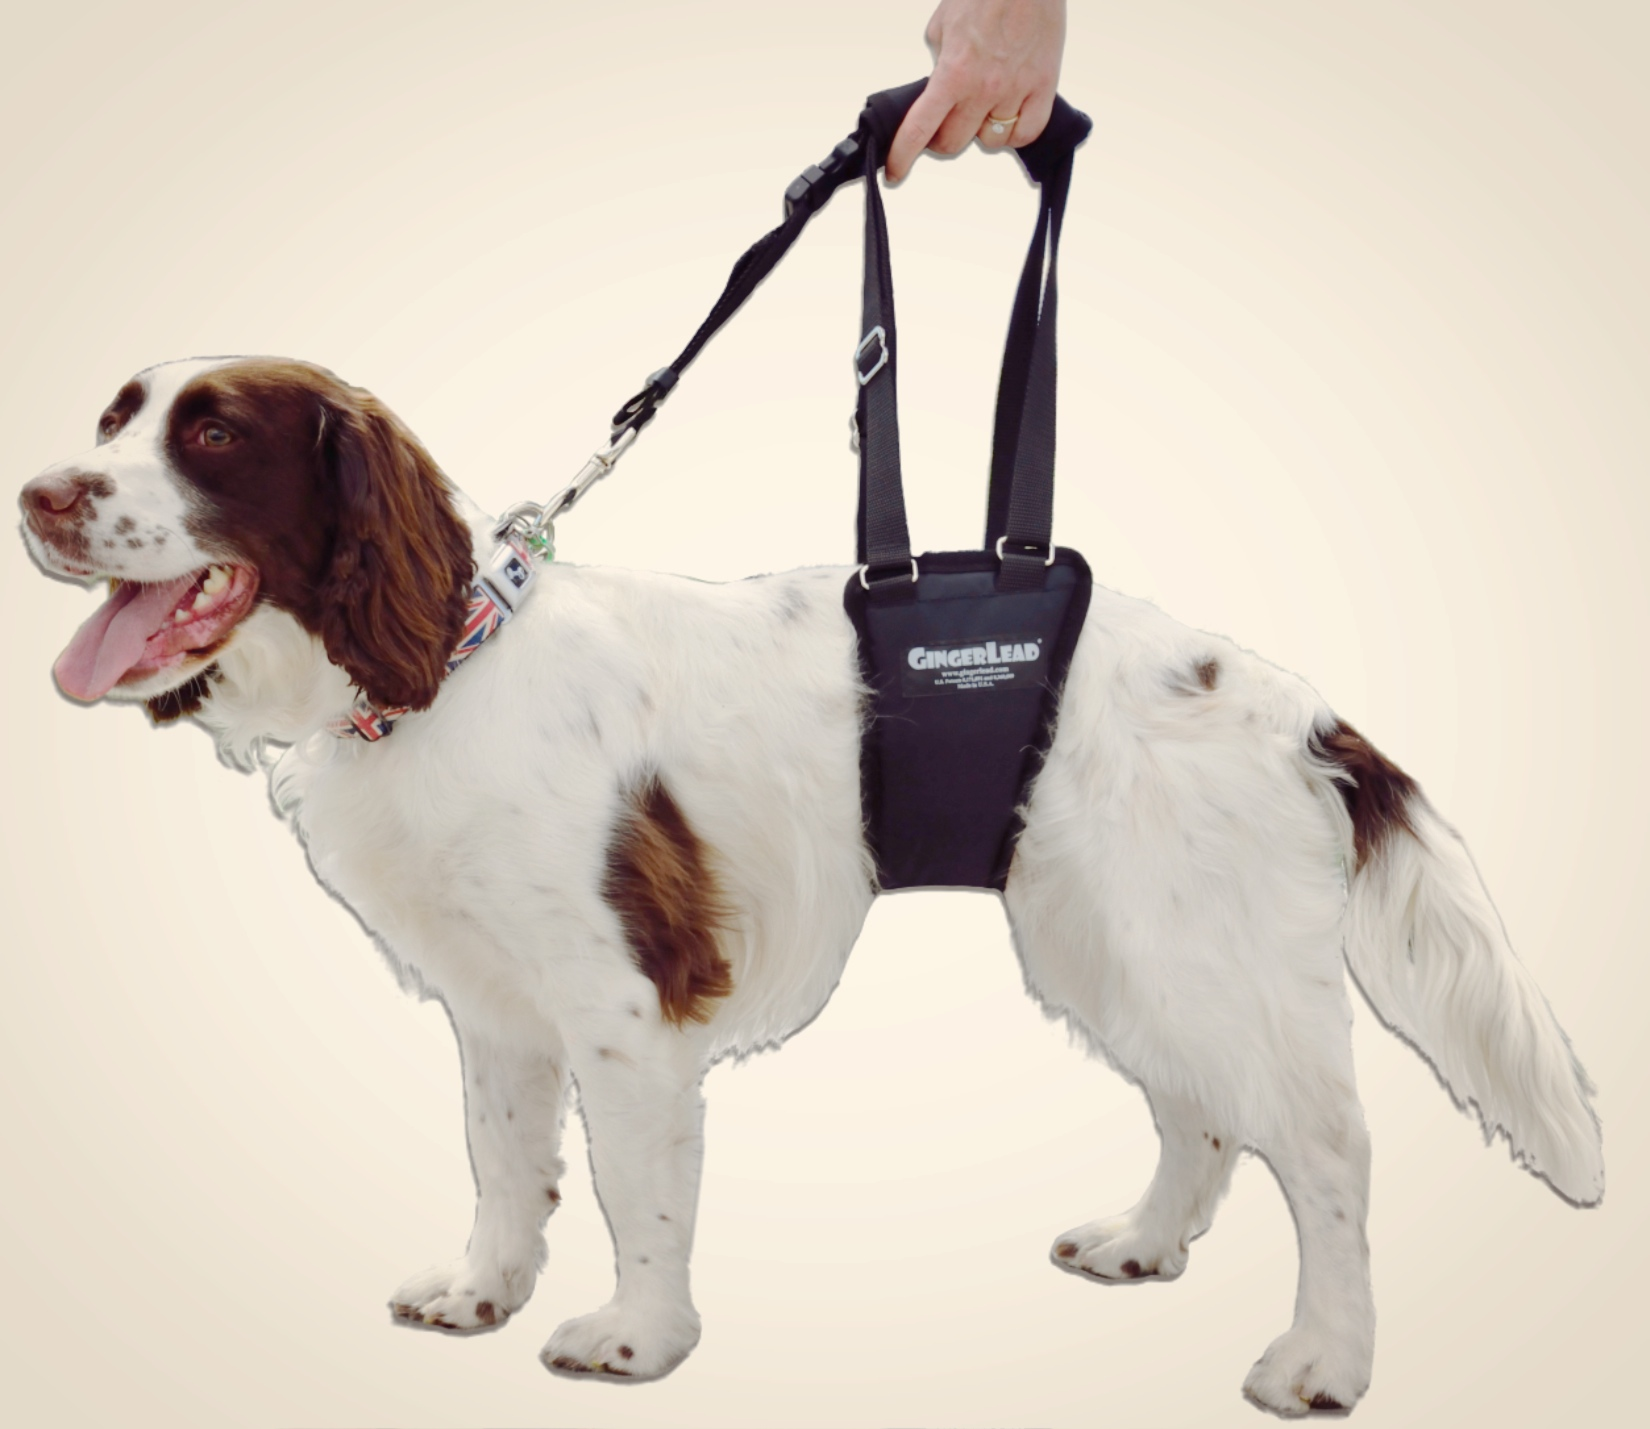 Gingerlead Dog Hind Leg Harness The Nose Stamp